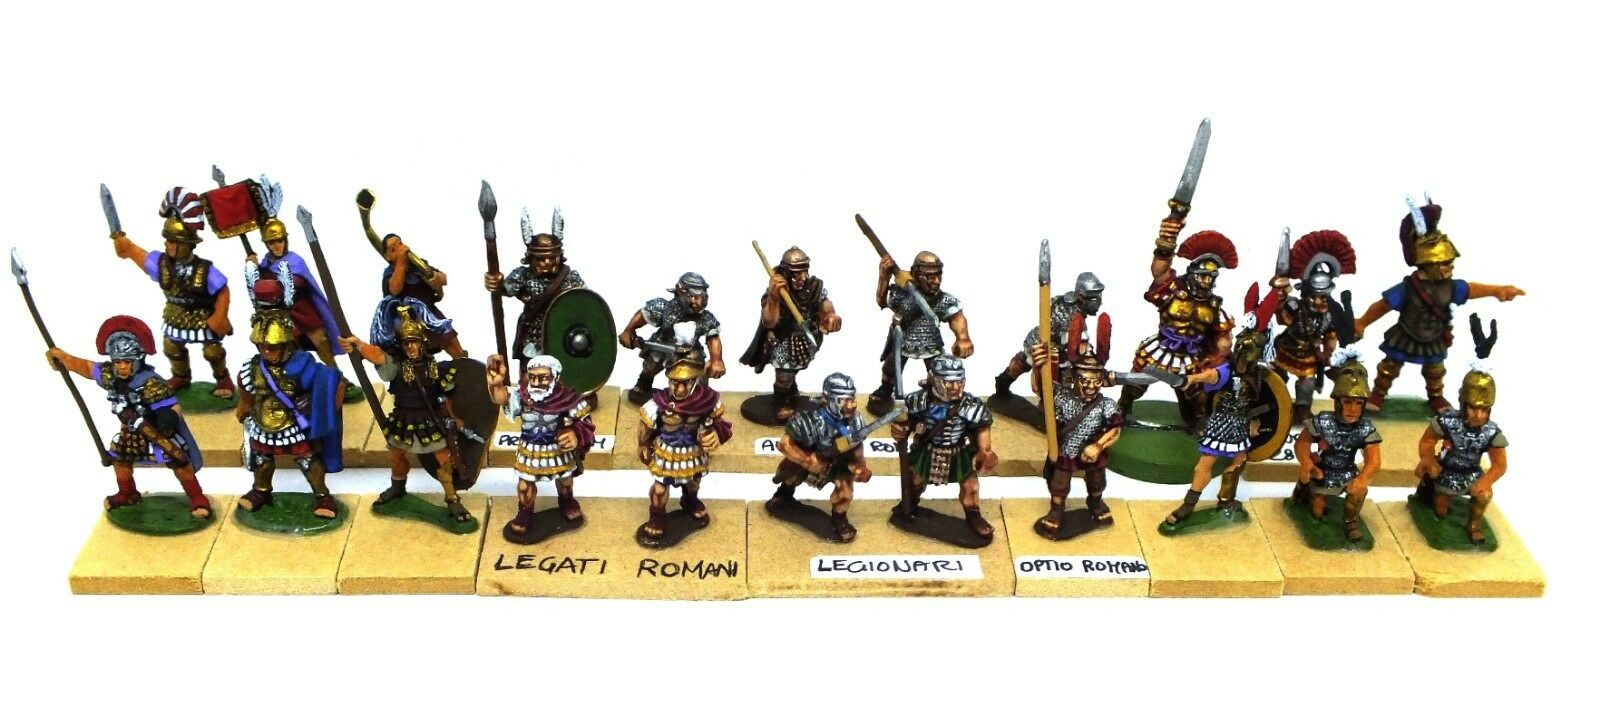 Roman army (high malte) - 28mm